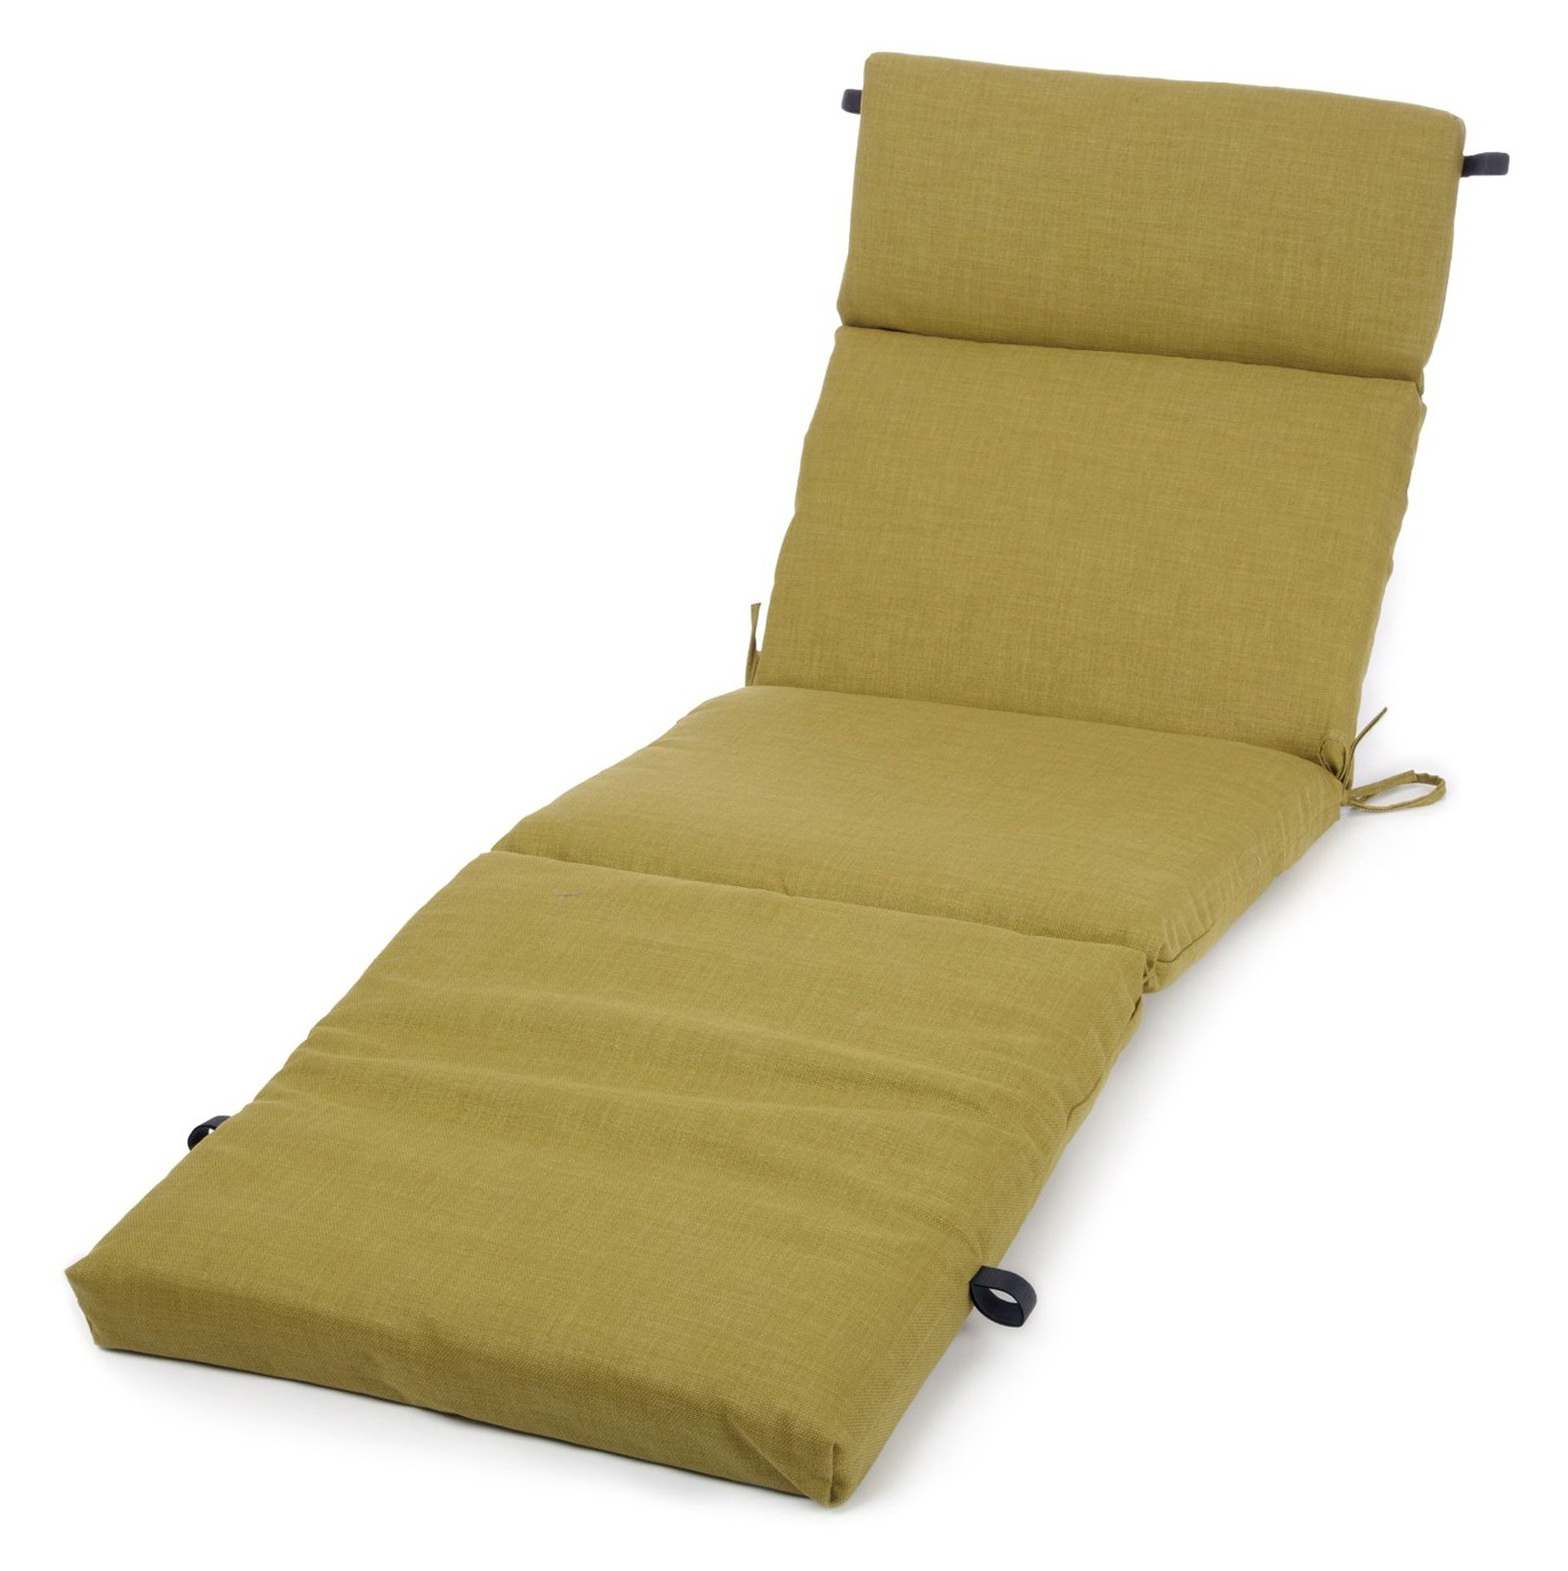 Chaise lounge outdoor cushions clearance home design ideas for Chaise lounge cushion outdoor